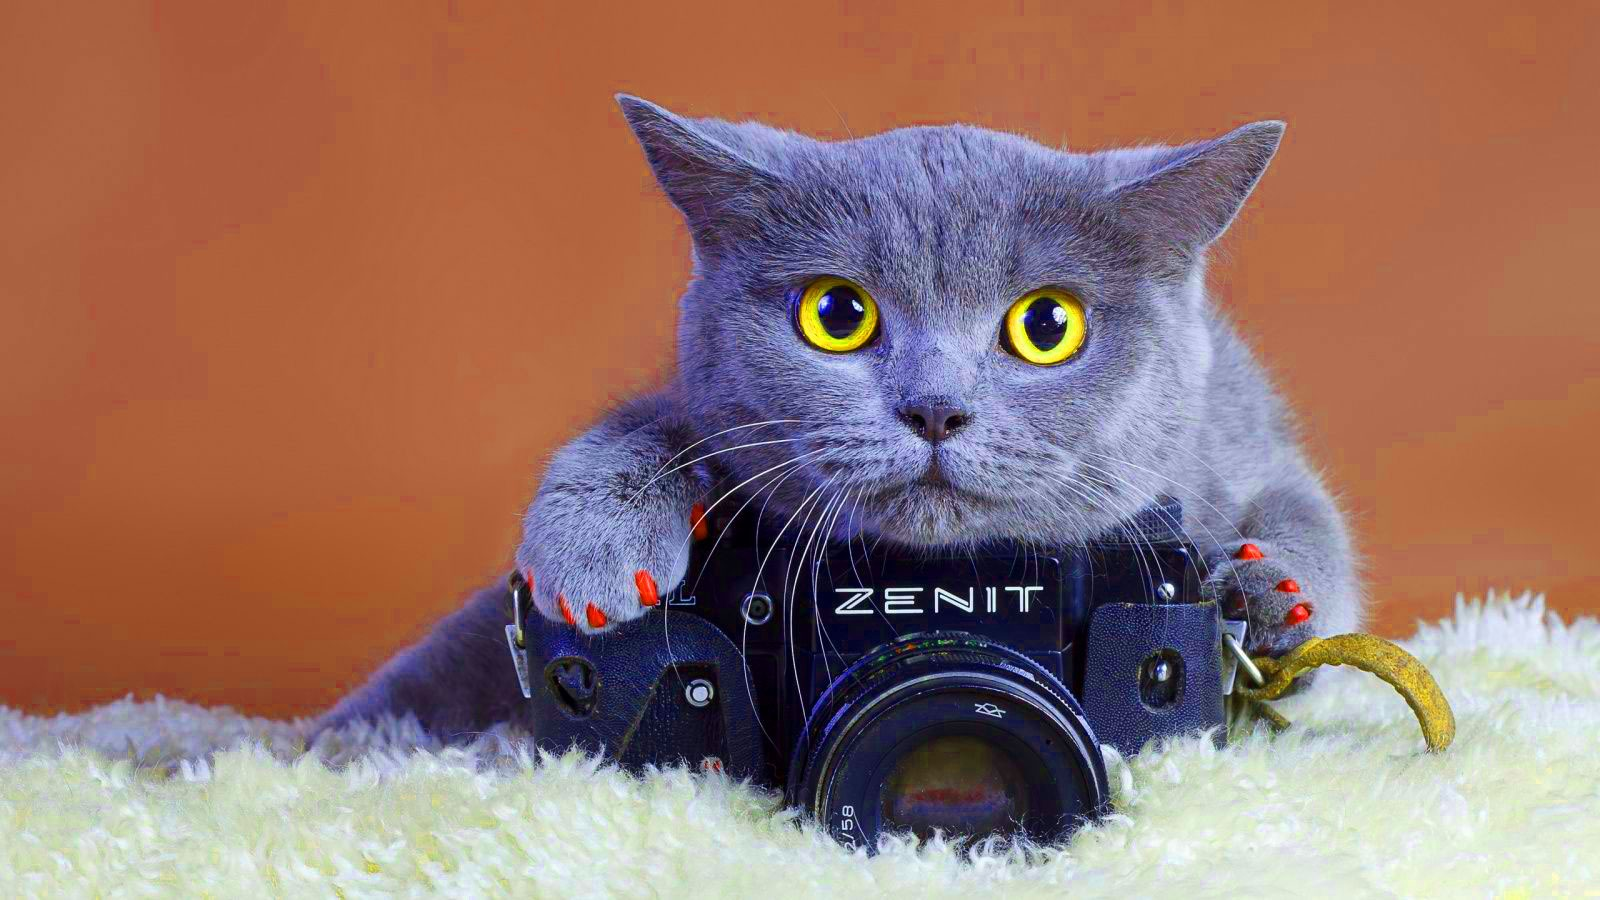 Funny Wallpaper Download With Cat